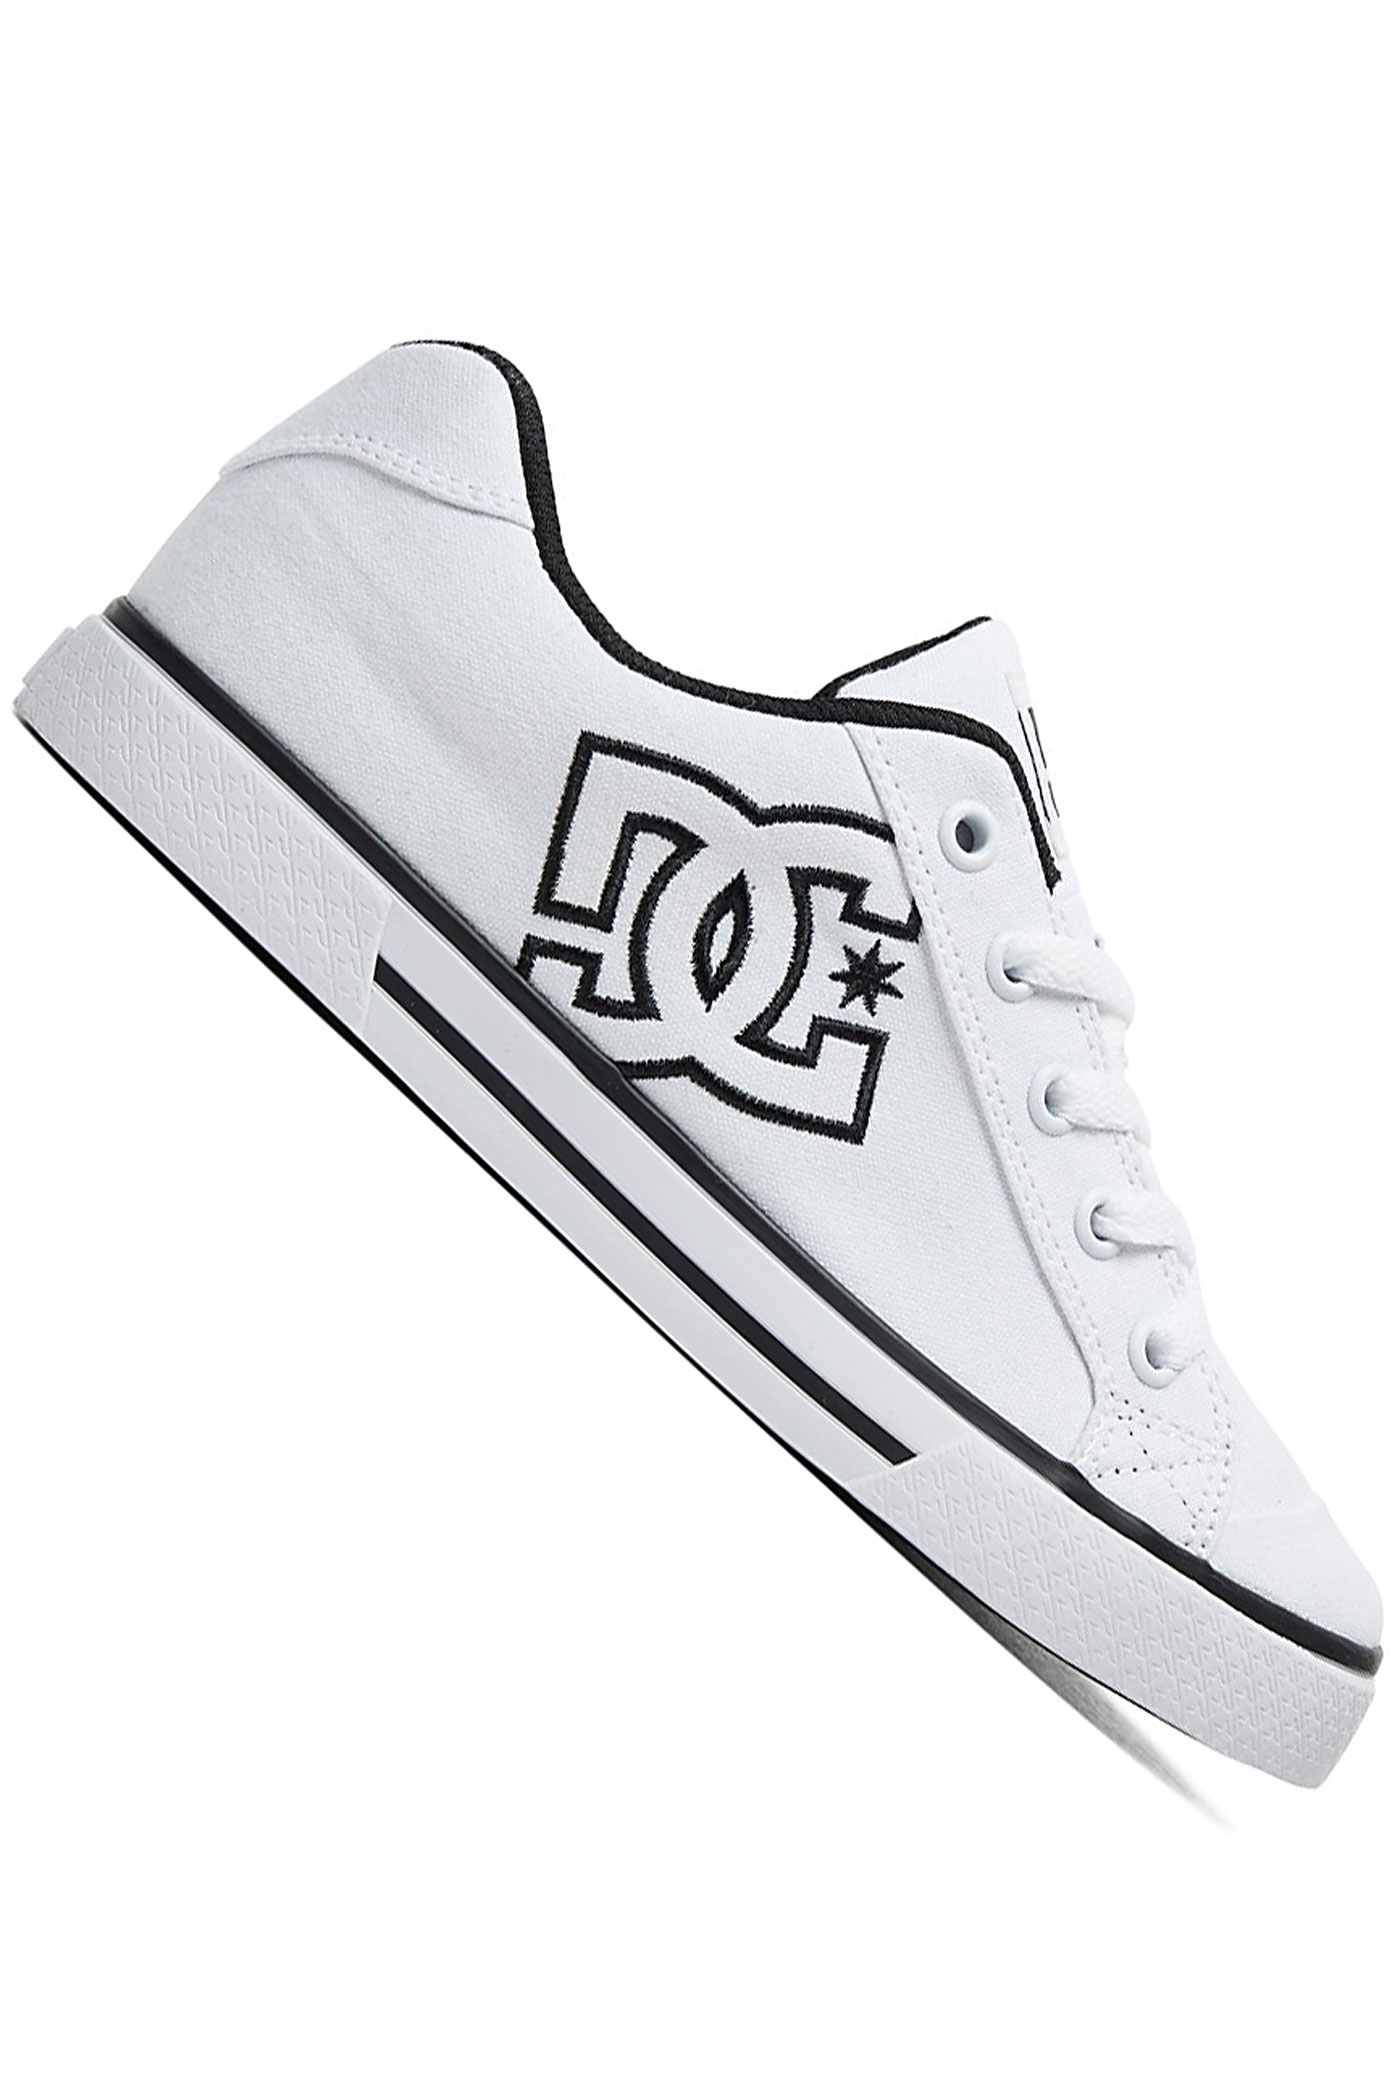 Womenwhite White Tx Chaussure Black Dc Chelsea KFlc1JuT3